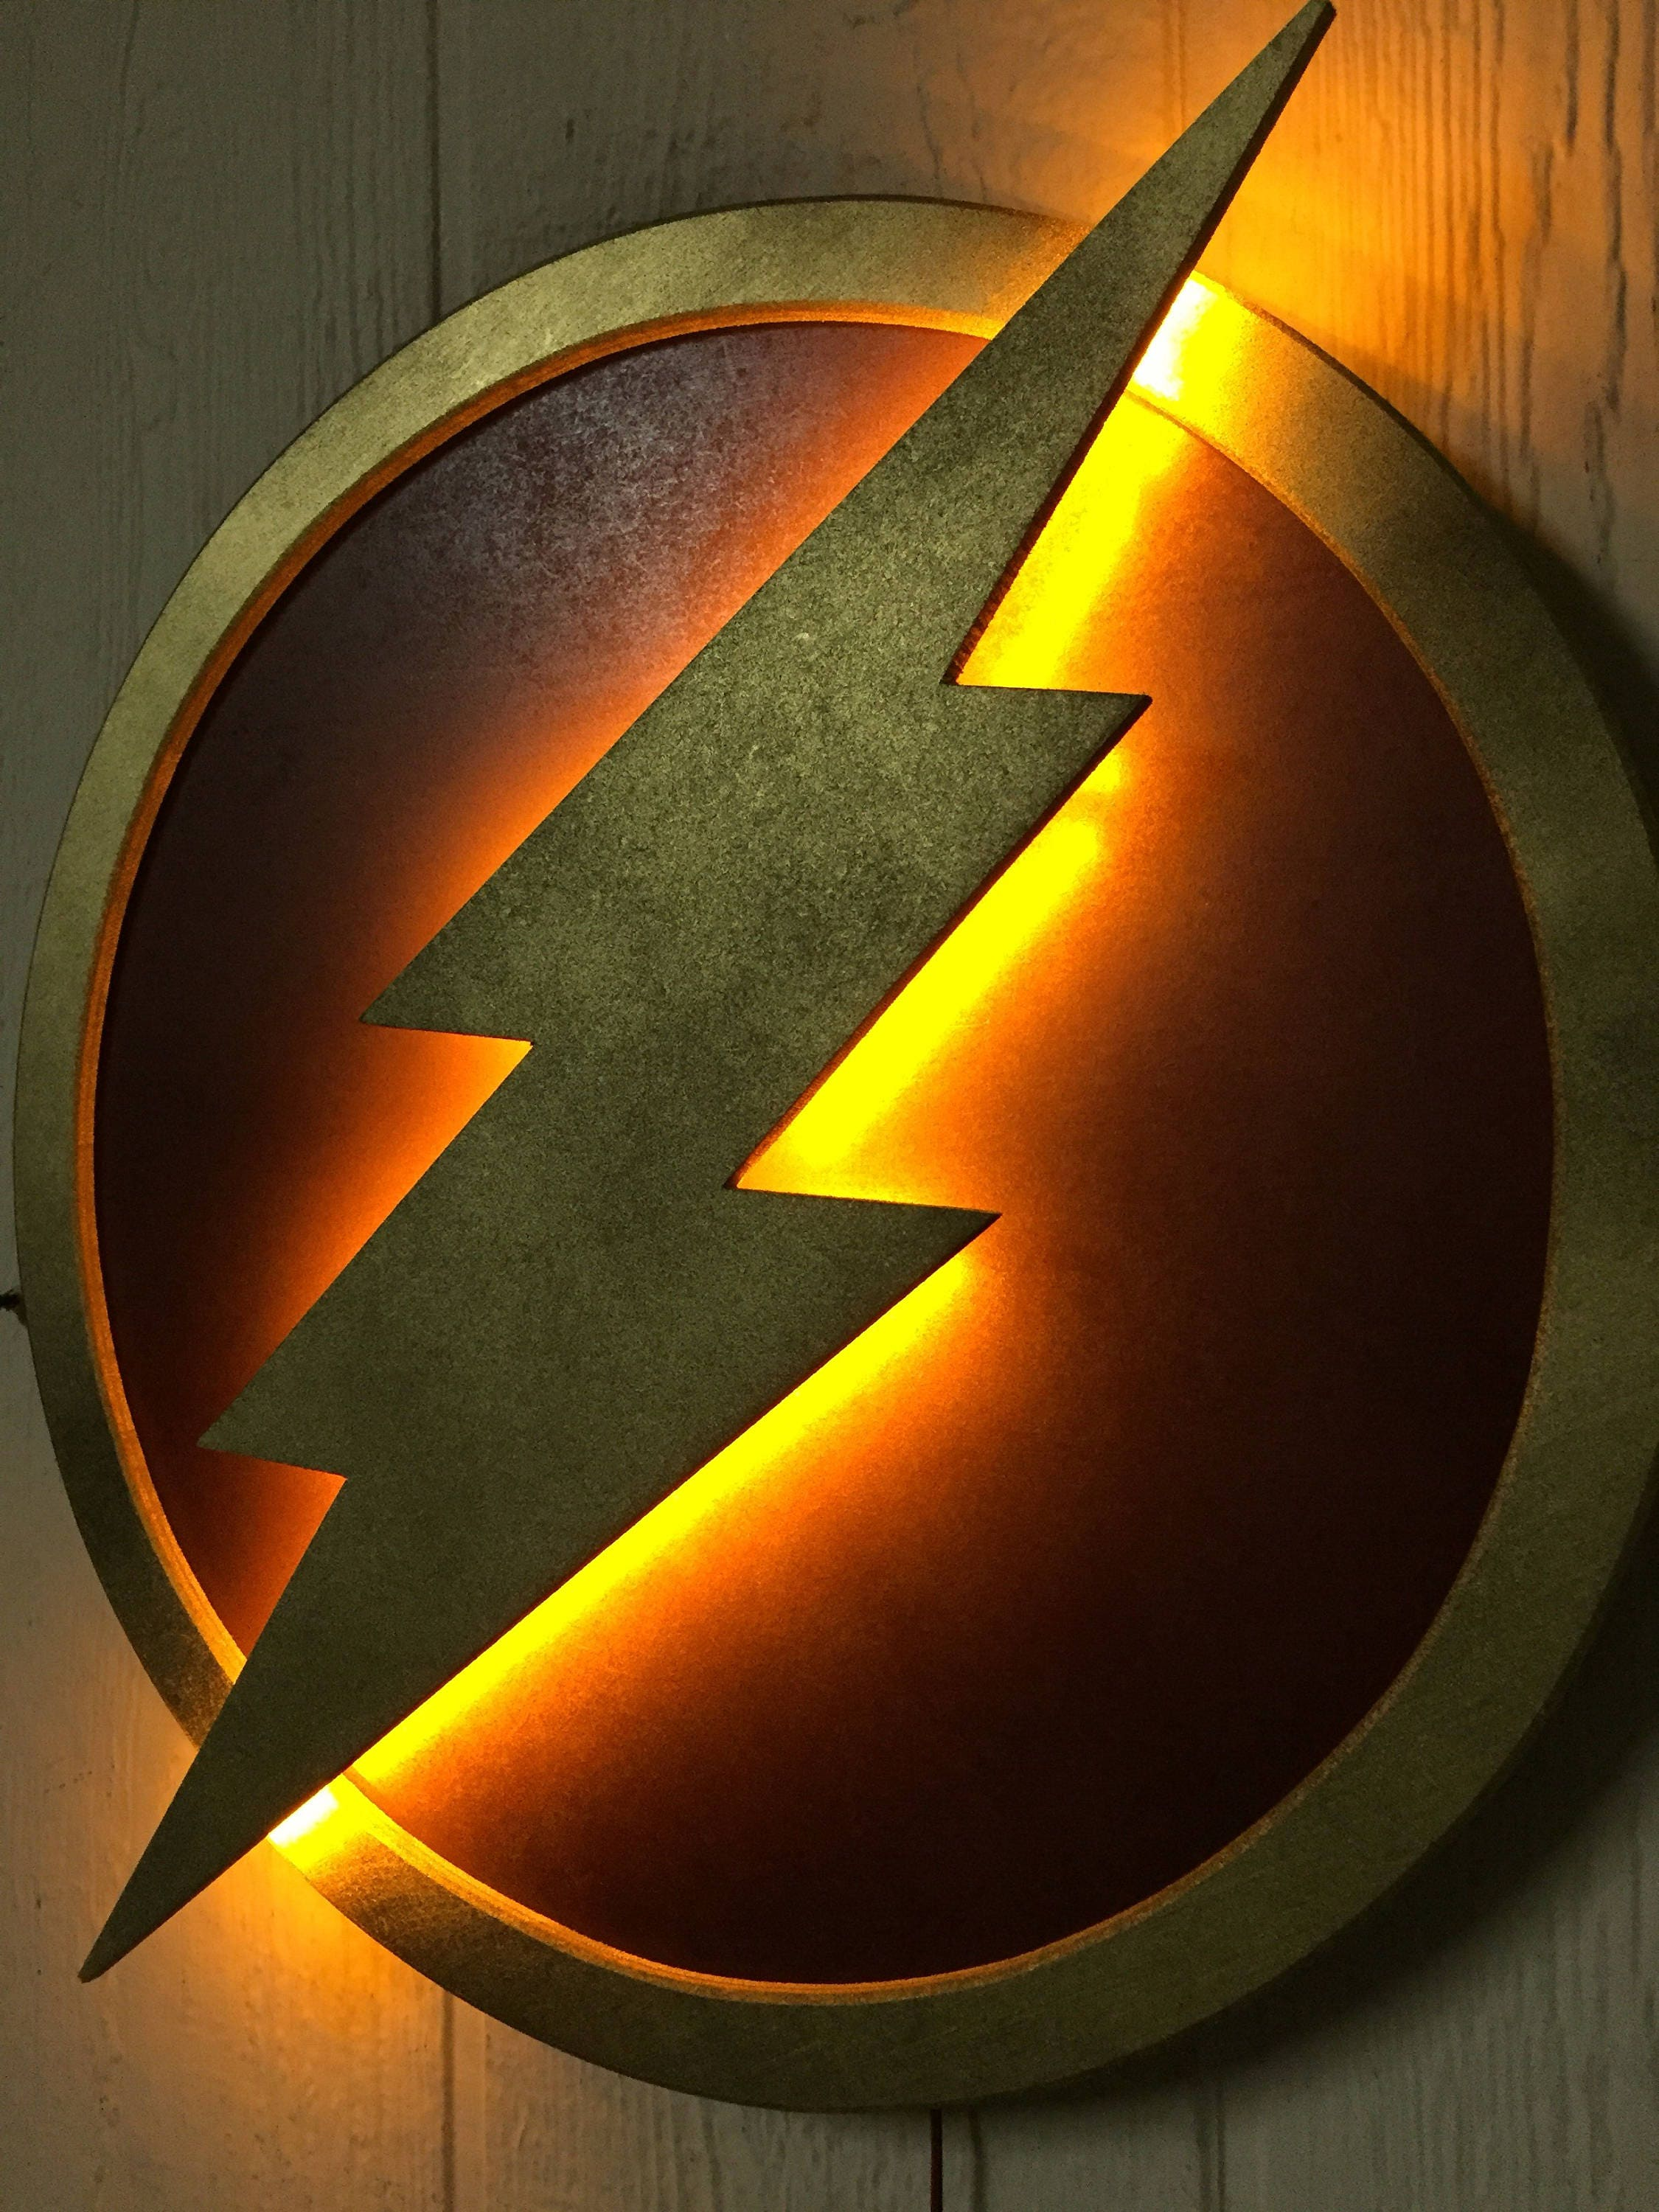 Justice league the flash led illuminated superhero logo night zoom buycottarizona Image collections